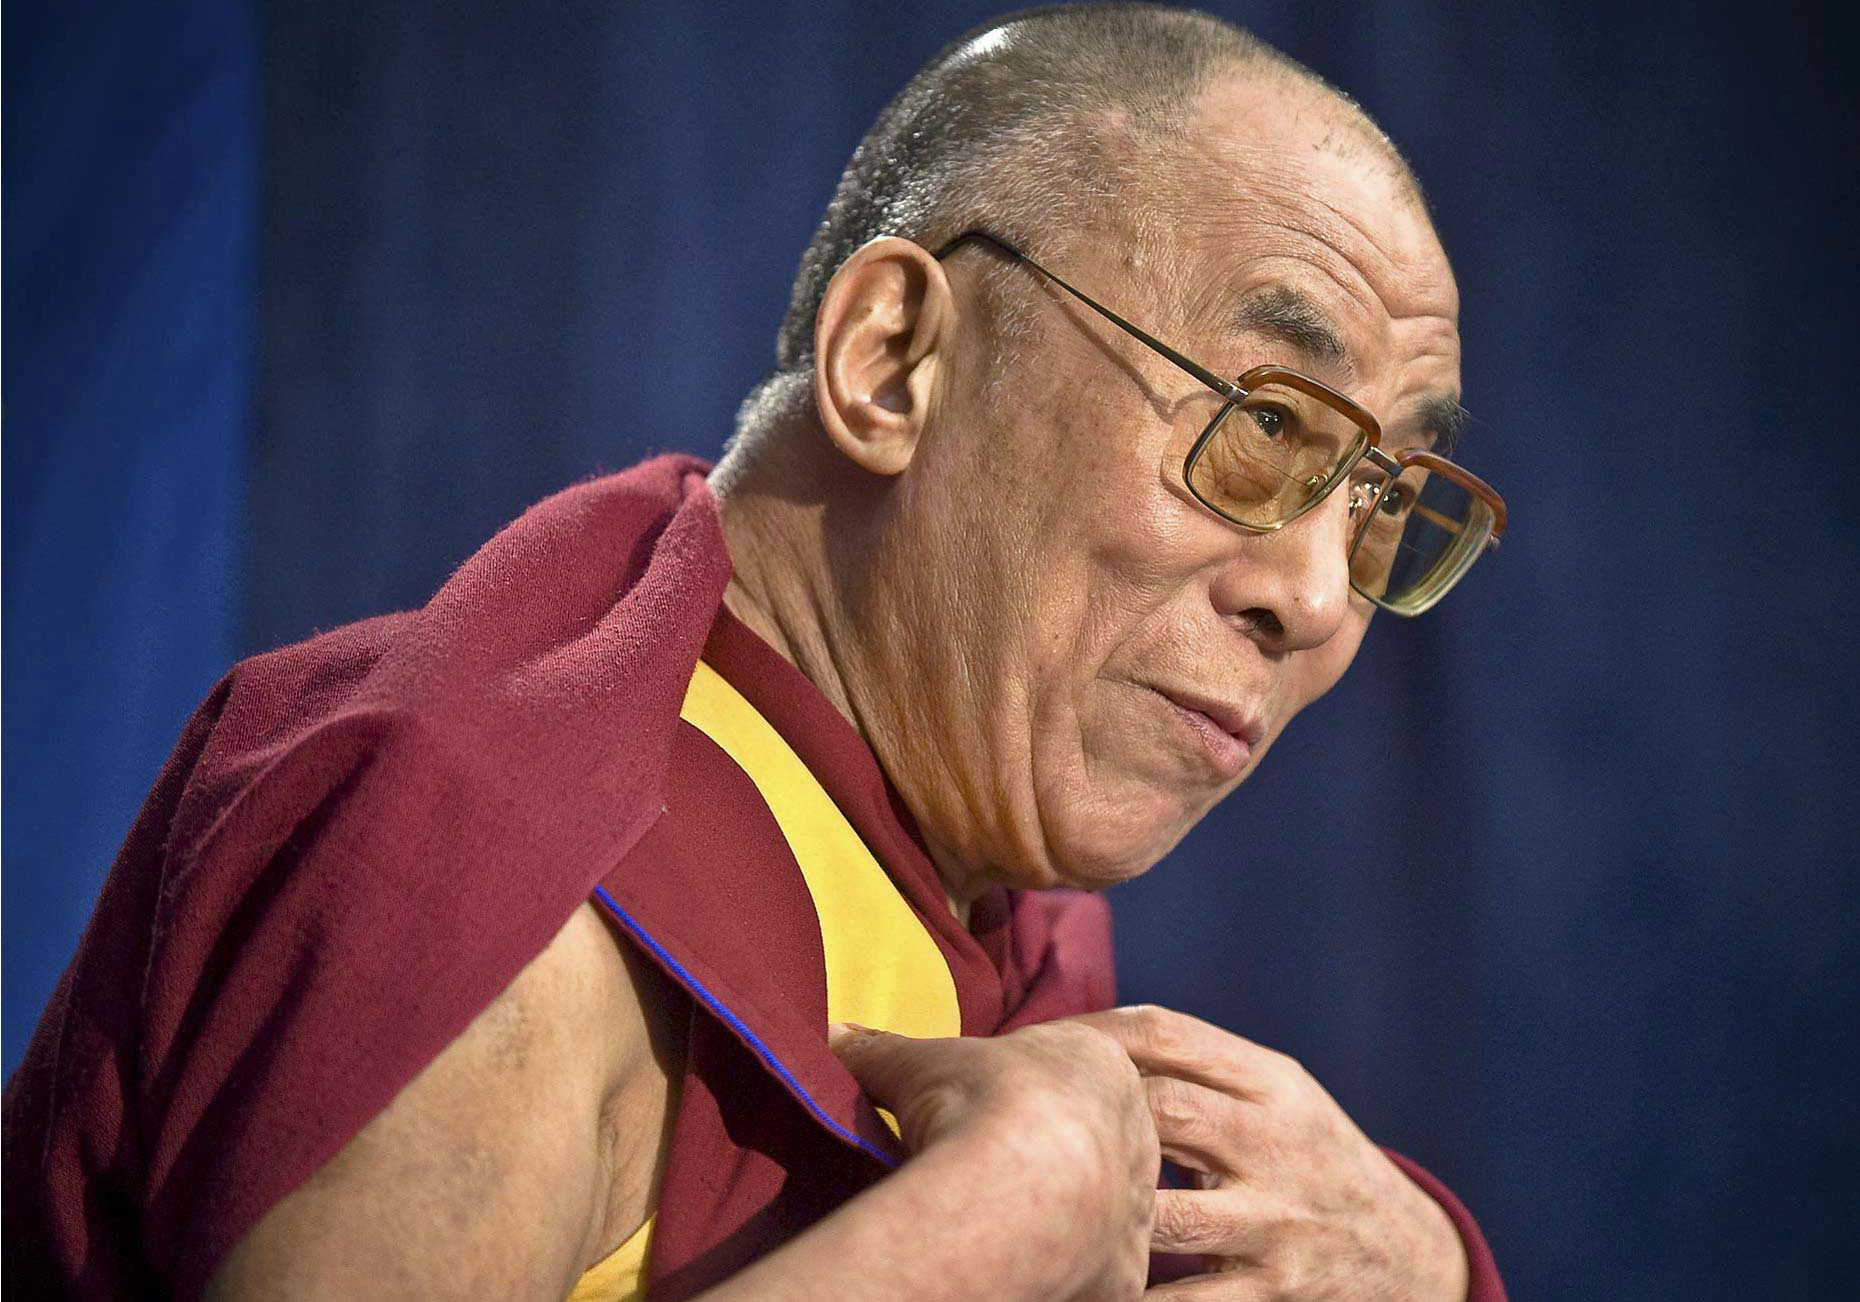 NEW_PhotoReporters_His-Holiness-the-Dalai-Lama_002